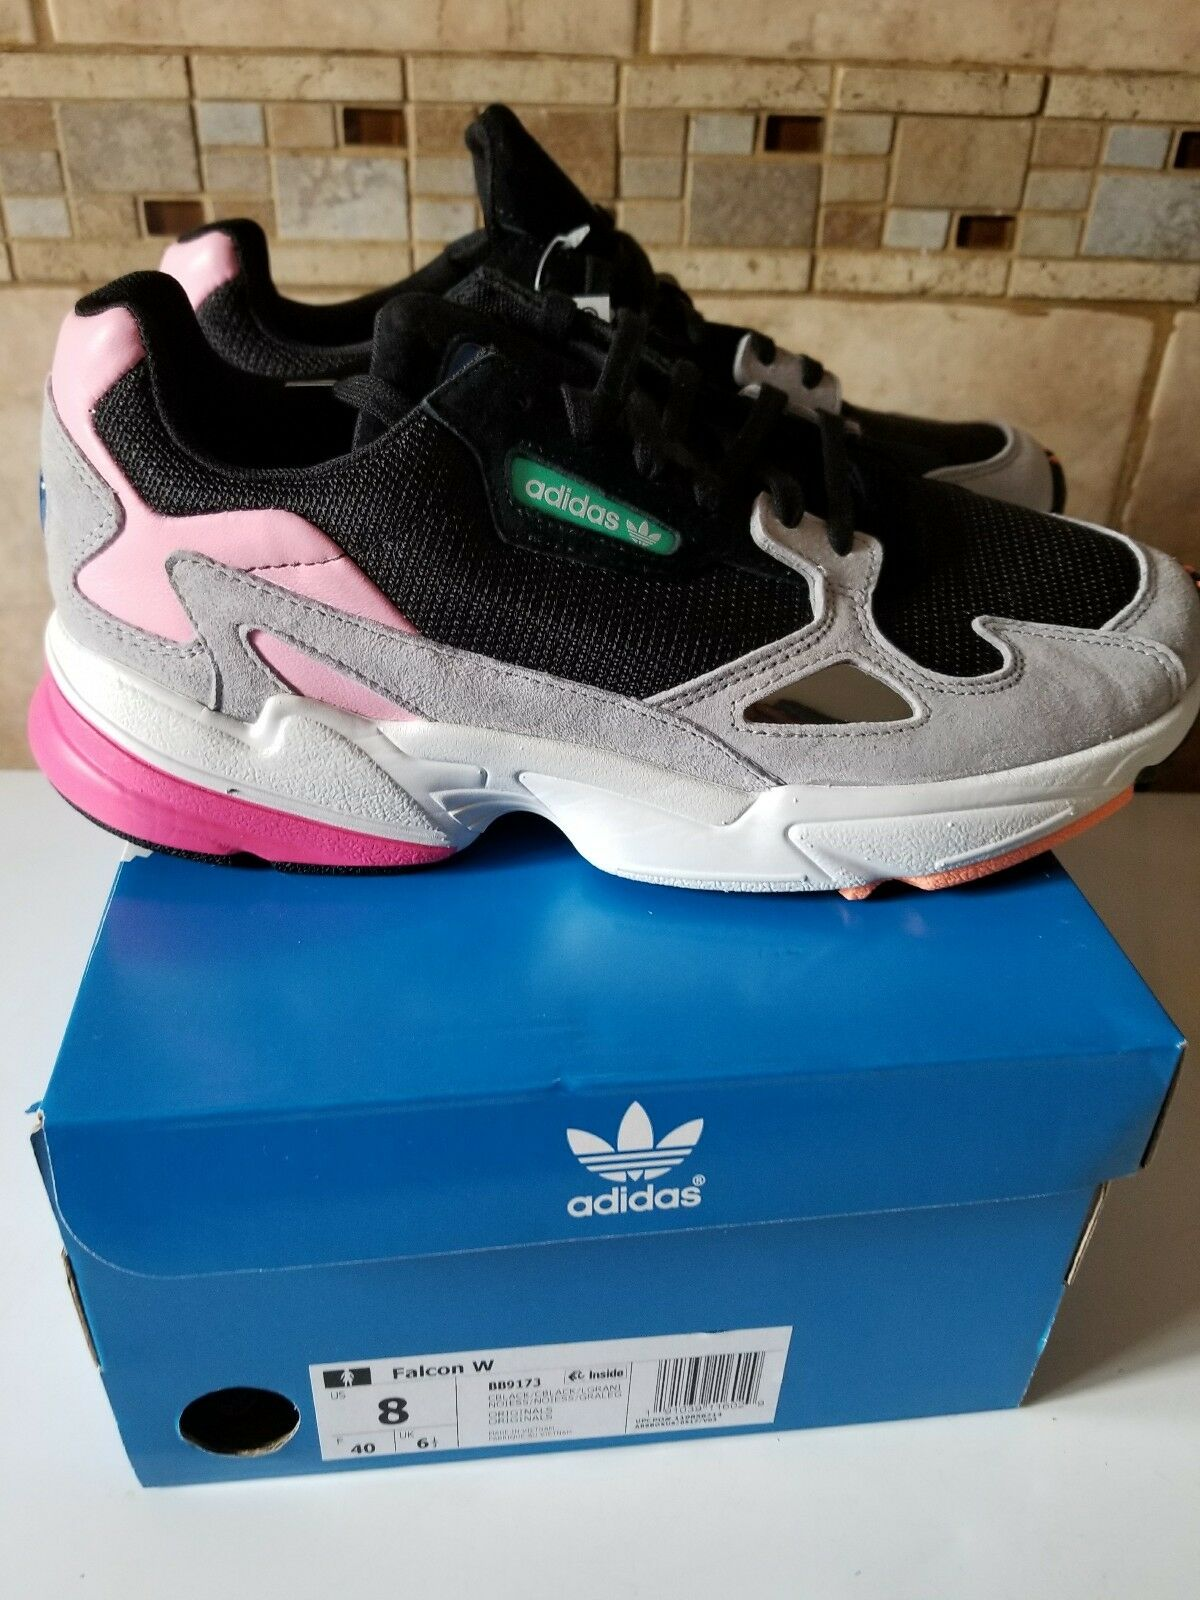 Adidas Falcon W Size 8W / Men's 6.5 (ozweego,yeezy,wave Runner,yung 1,nmd